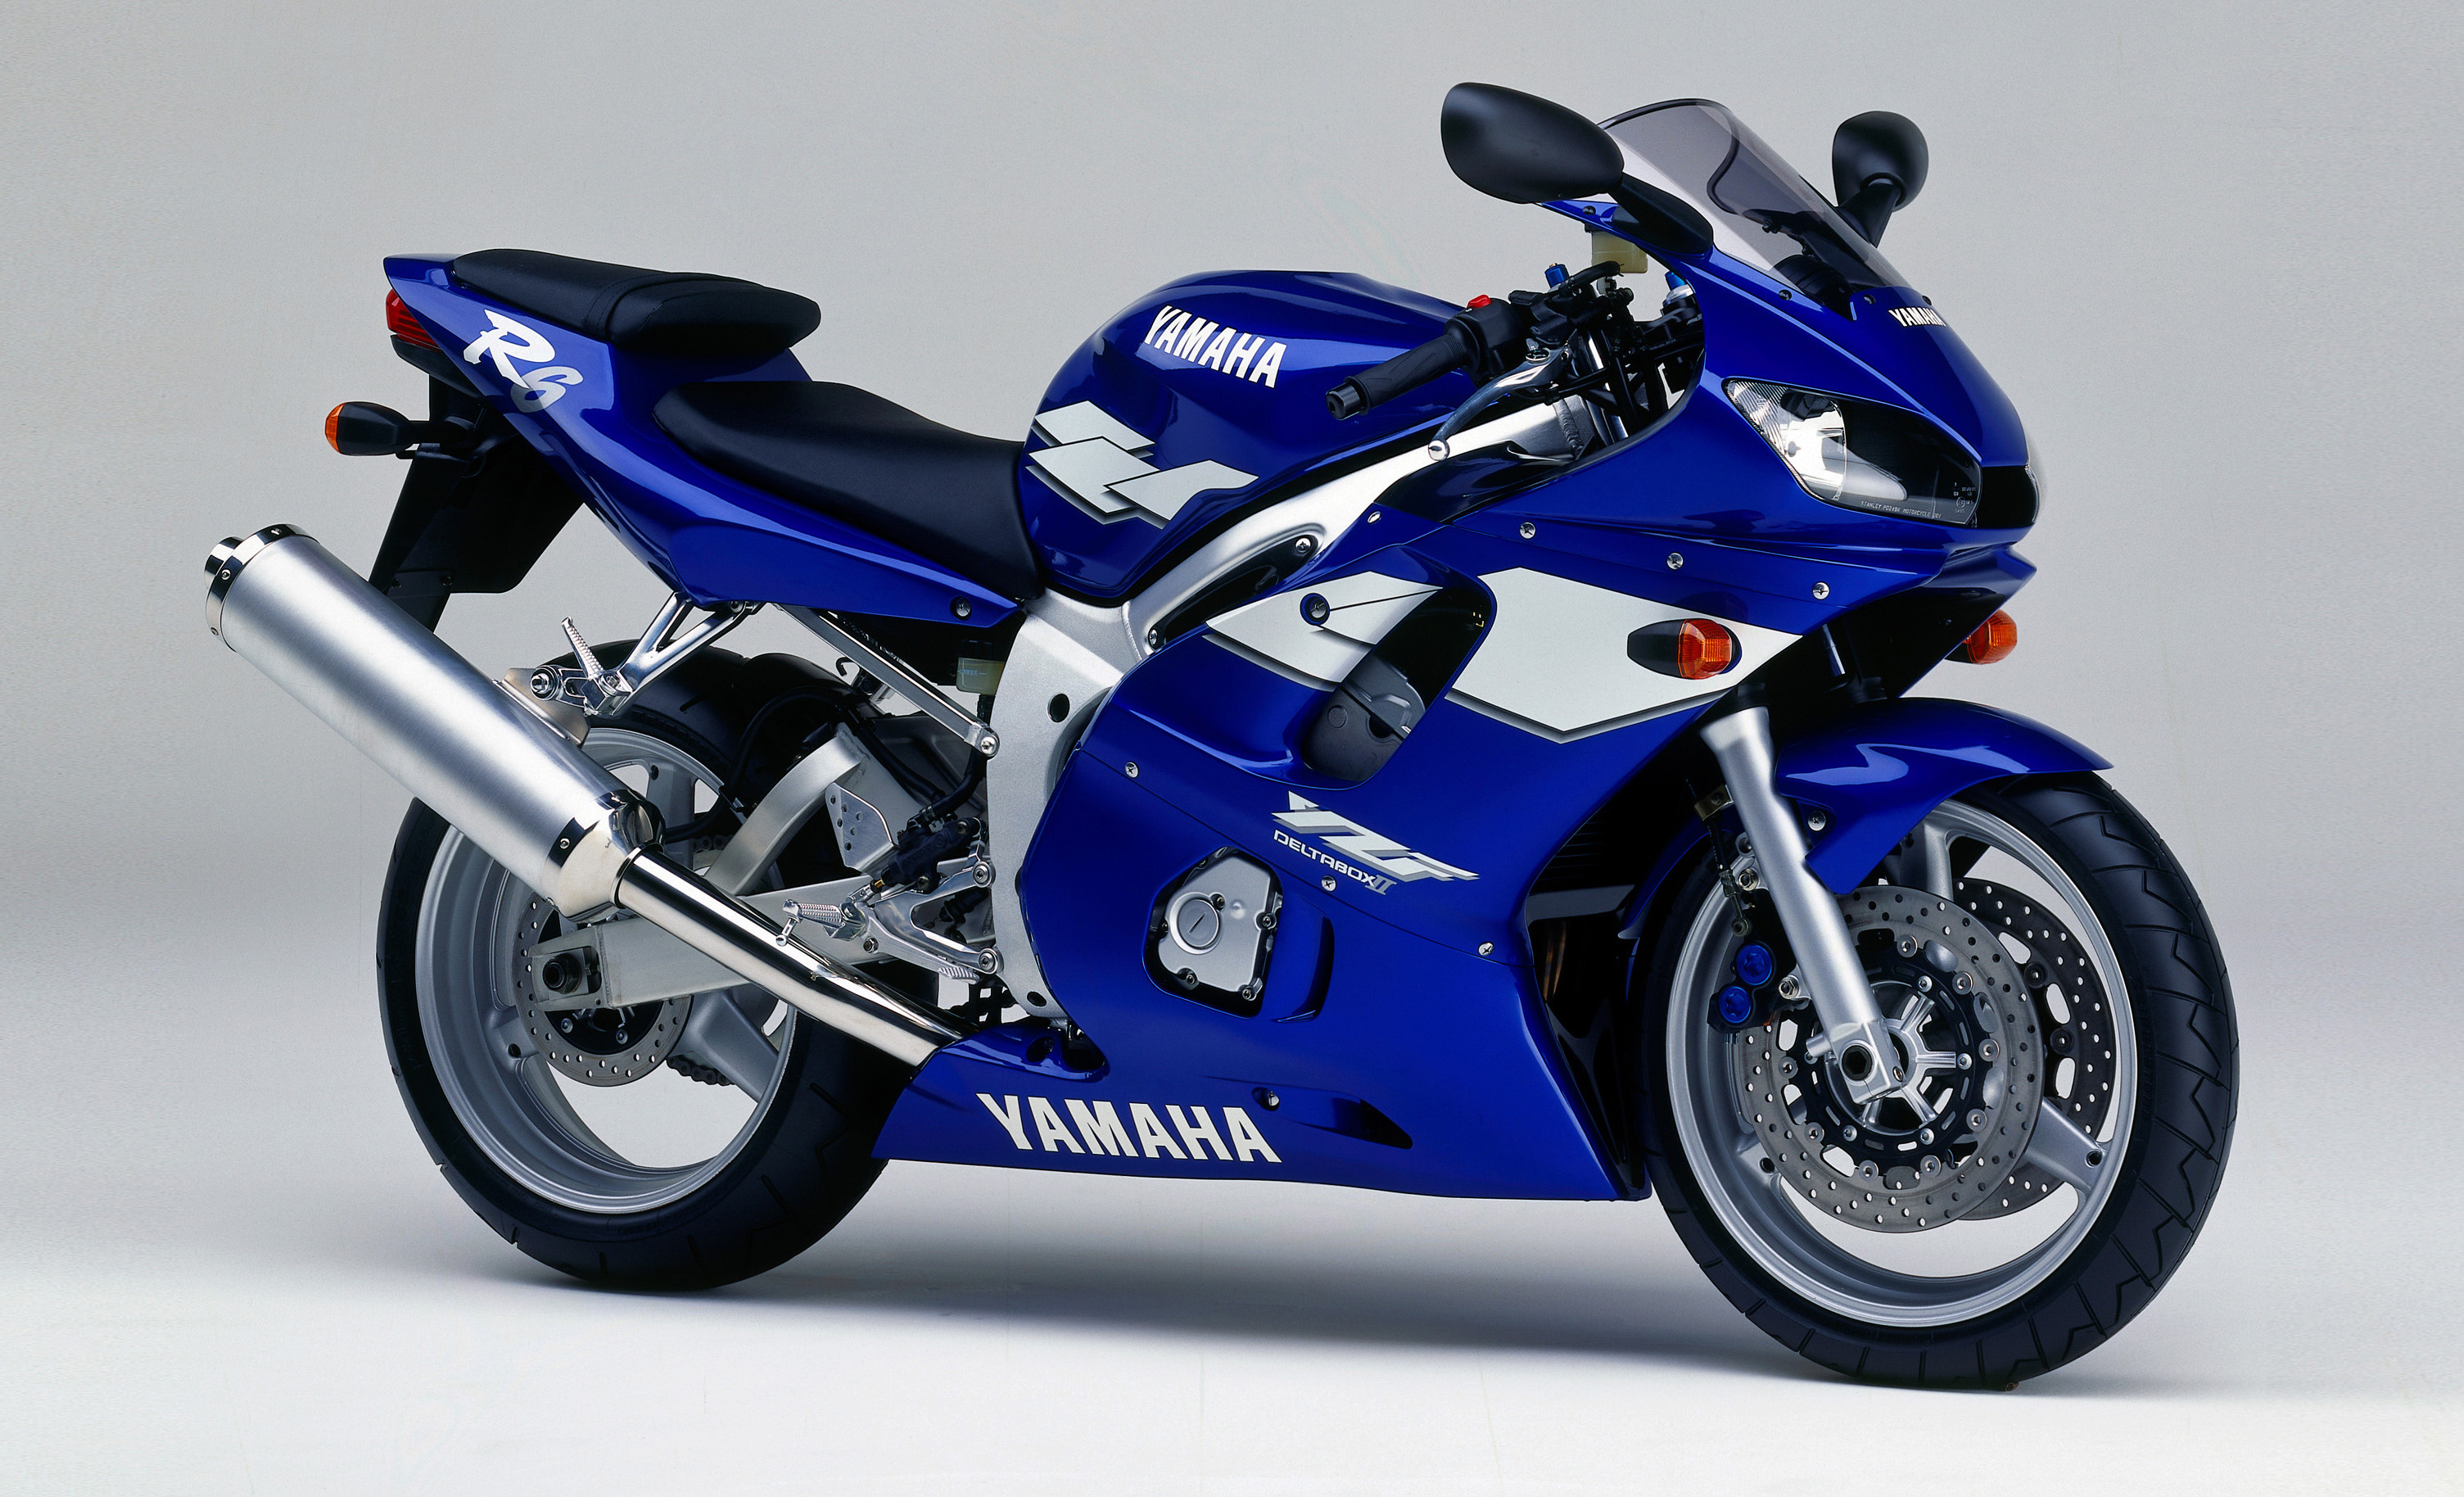 Yzf r6 1999 2002 review visordown for Yamaha r6 600 for sale